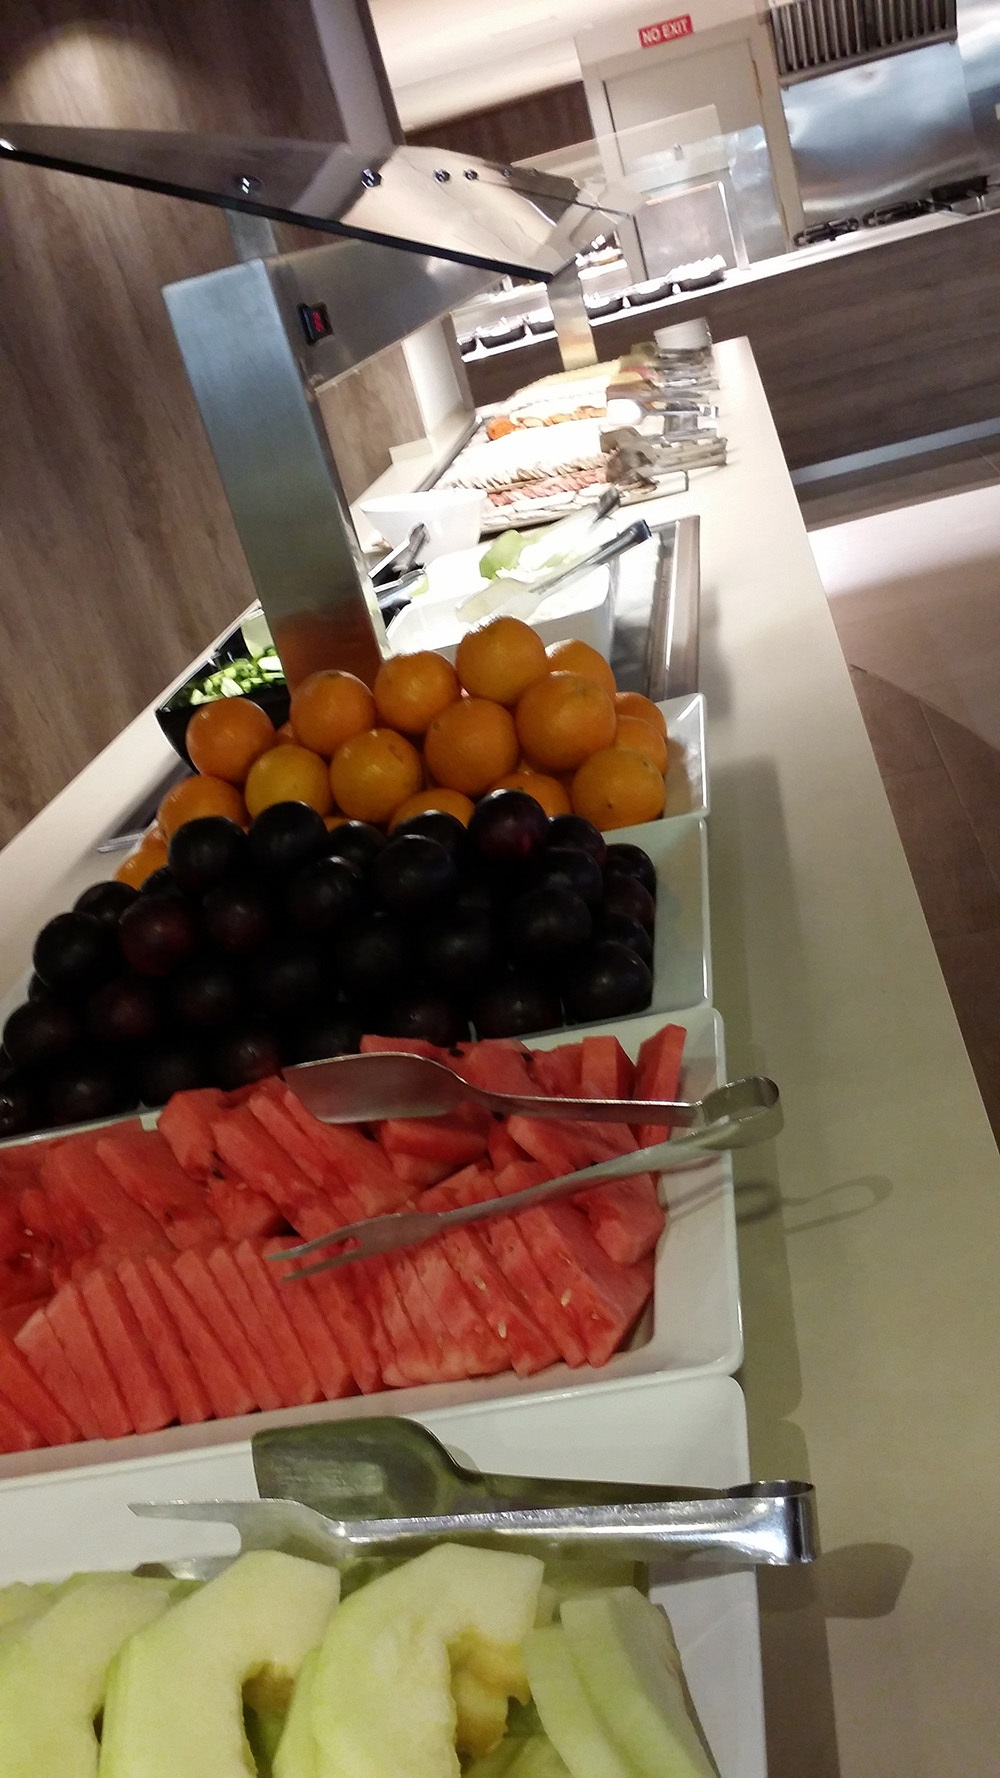 Tonga-Tower-Design-Hotel-Suites-Can-Picafort-Buffet-Obst